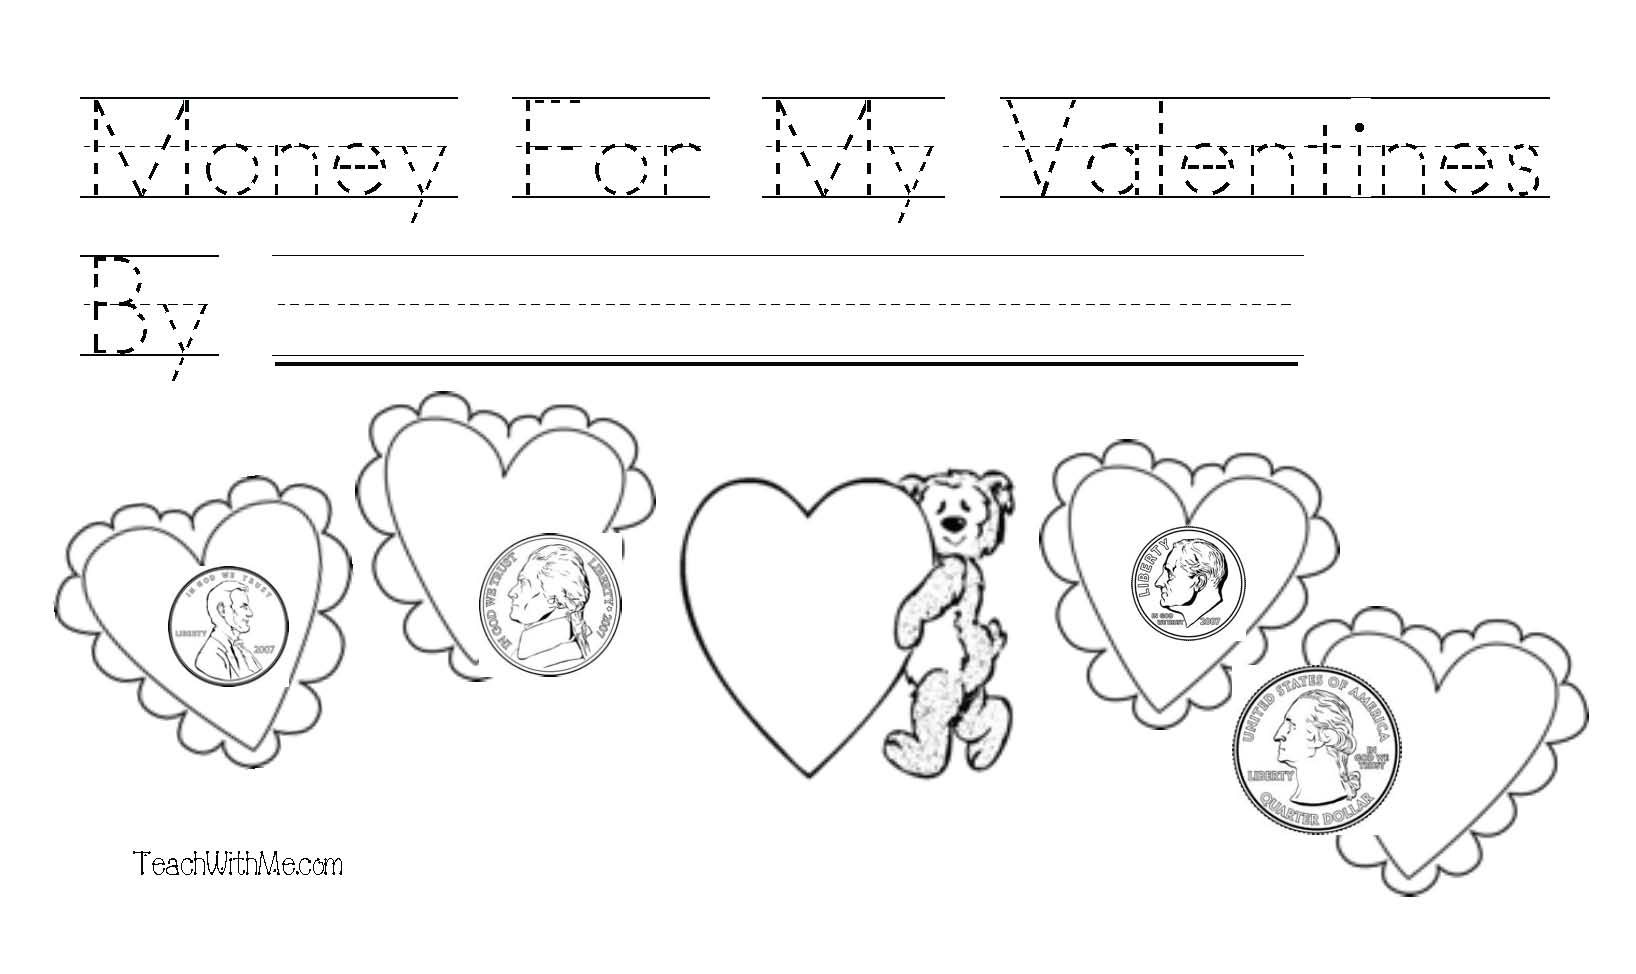 Mitten activities, free common core lessons for kindergarten, free common core lessons for 1st grade, penny nickel dime quarter activities, money lessons, coin booklet, mitten booklet, word wall words, Dolch words, Valentine's Day activities, Valentine booklet, Daily 5 activities for winter,